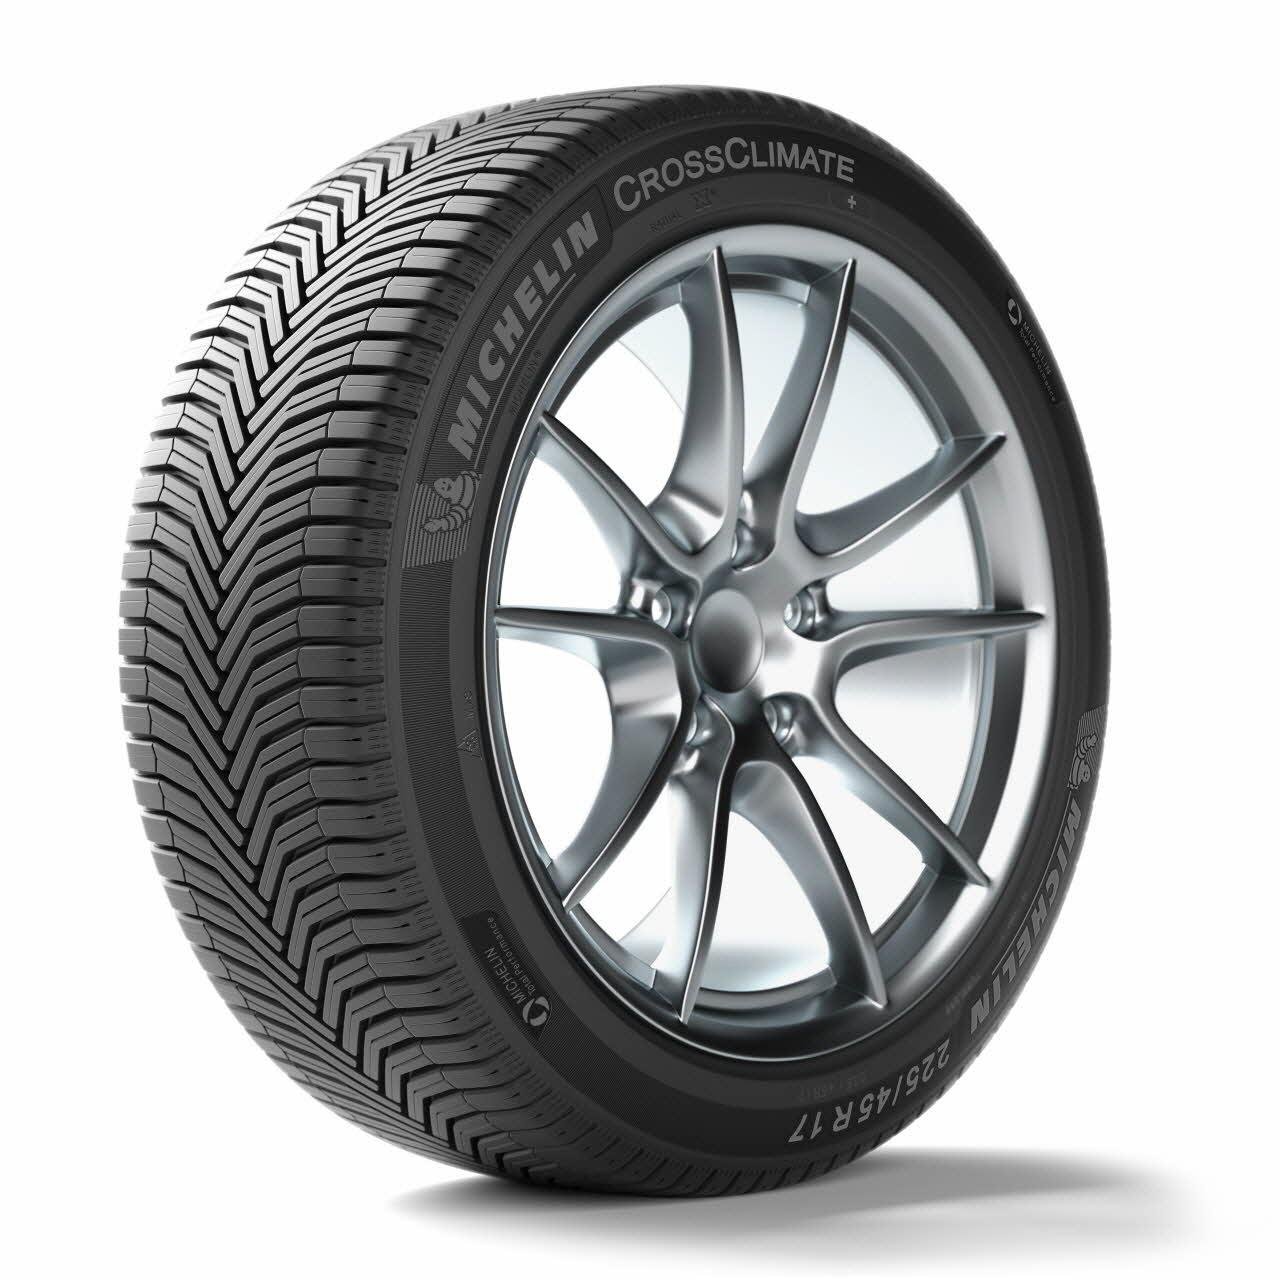 GR MICHELIN CrossClimate